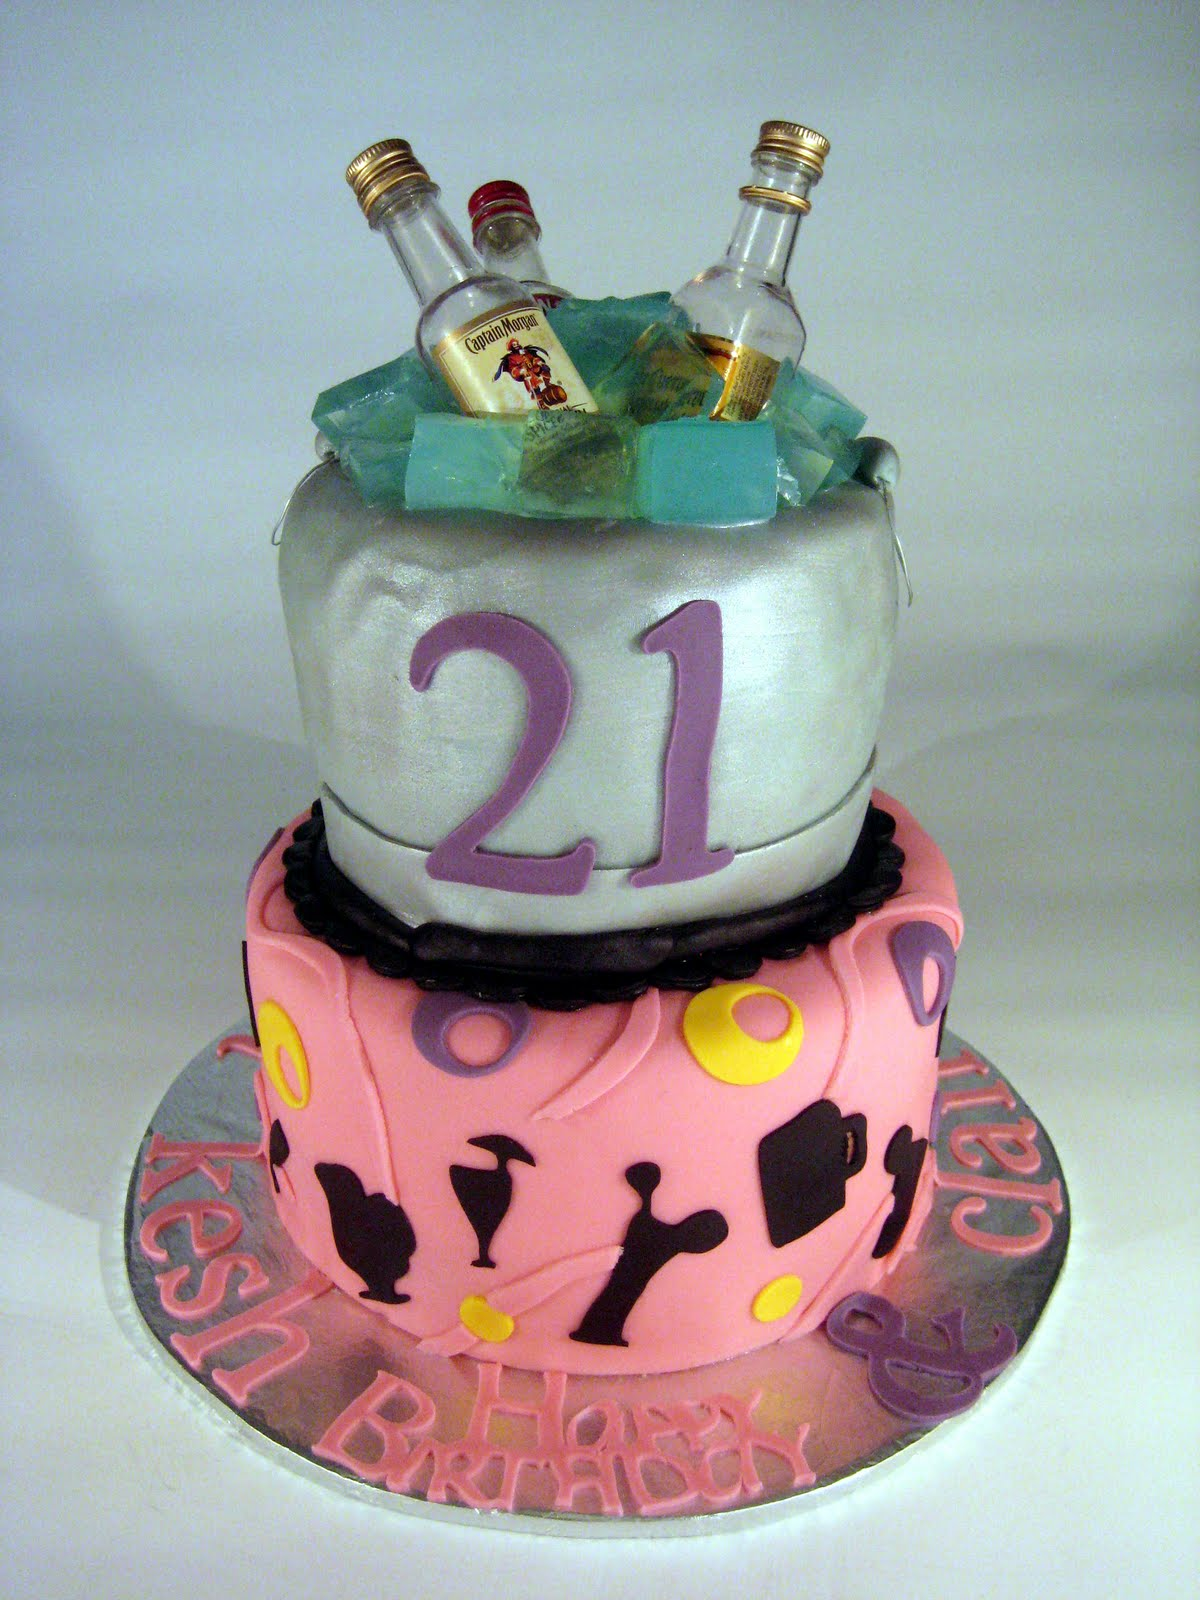 21st Birthday Cake Design For Her : 21st Birthday Cakes   Decoration Ideas Little Birthday Cakes